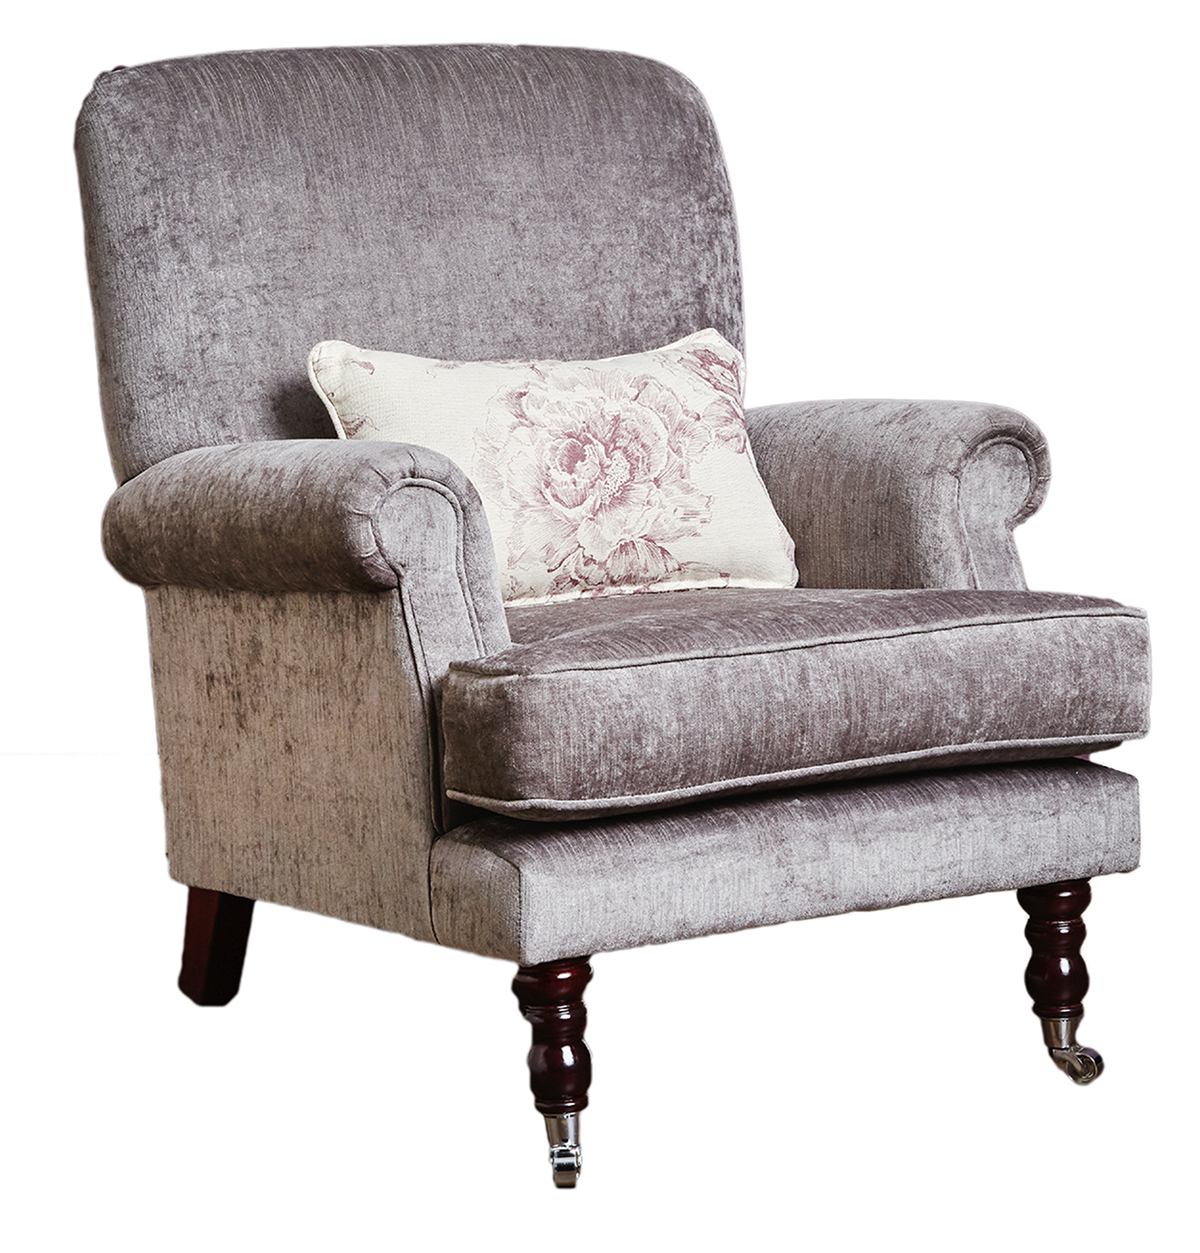 Cleary Chair Side in Edinburgh Truffle Silver Collection Fabric